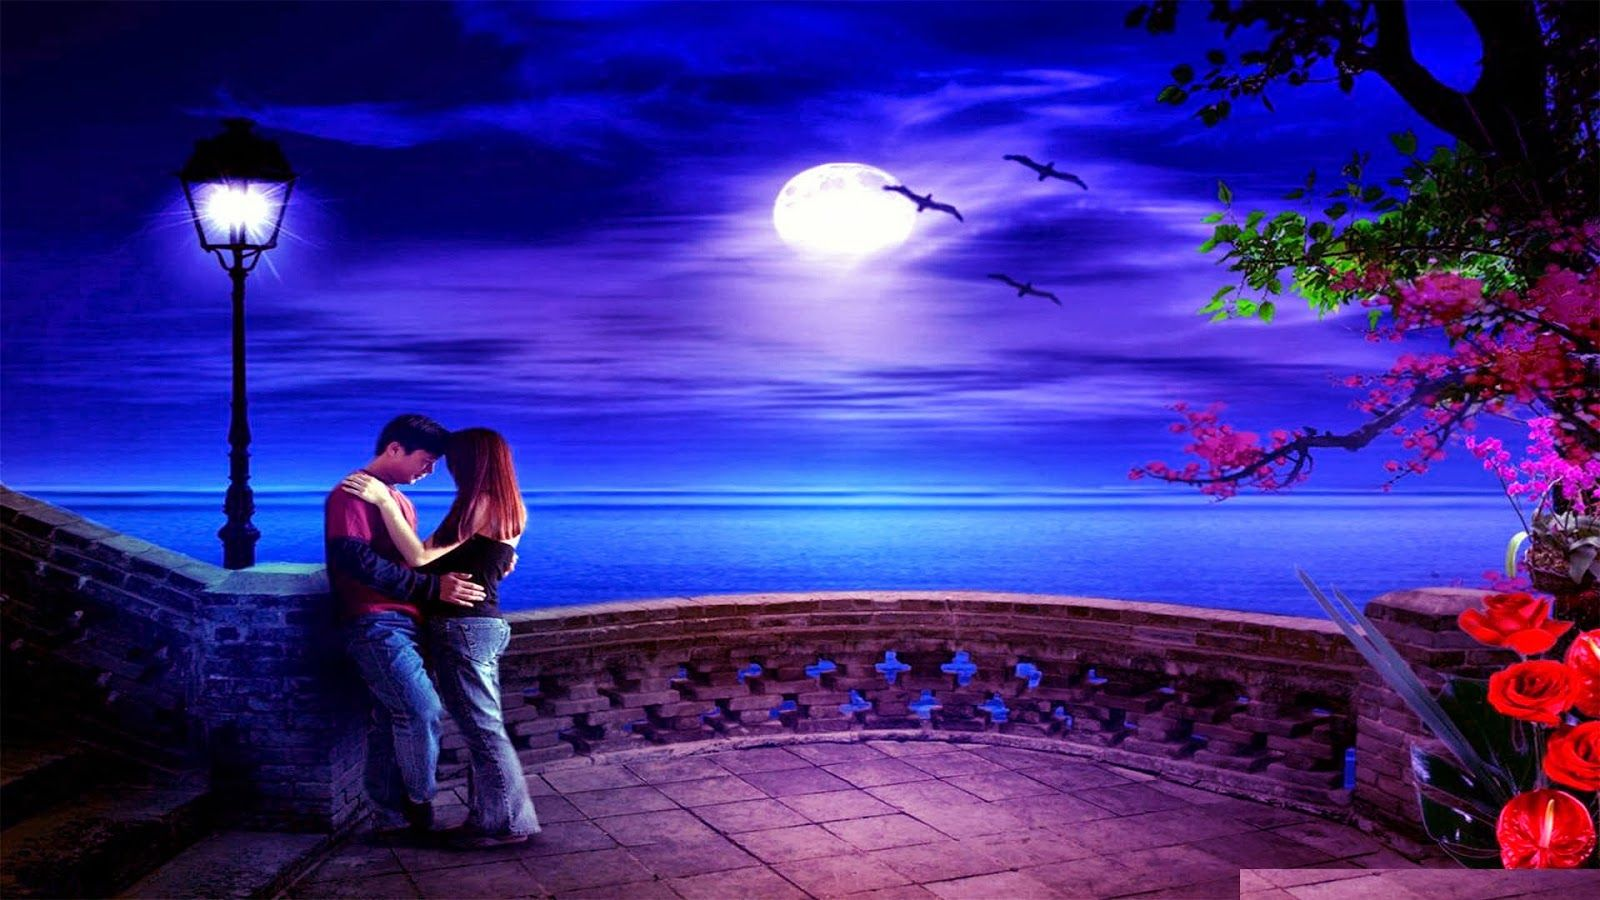 800+ Romantic Wallpaper Beautiful HD Terbaik